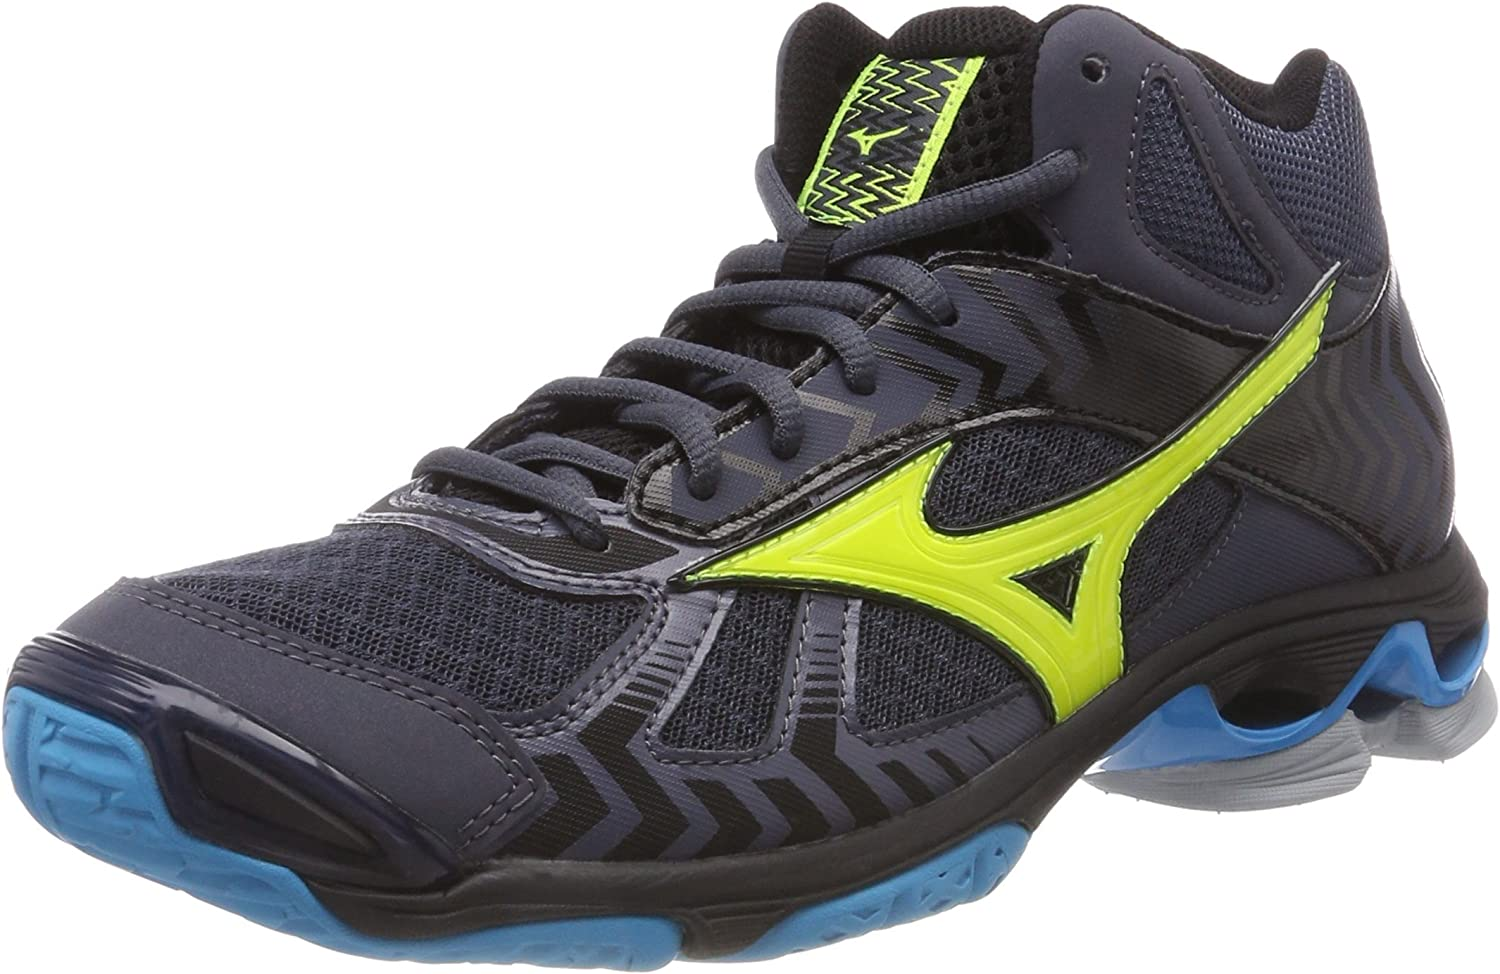 Mizuno Men's Wave Bolt 7 Mid Volleyball shoes